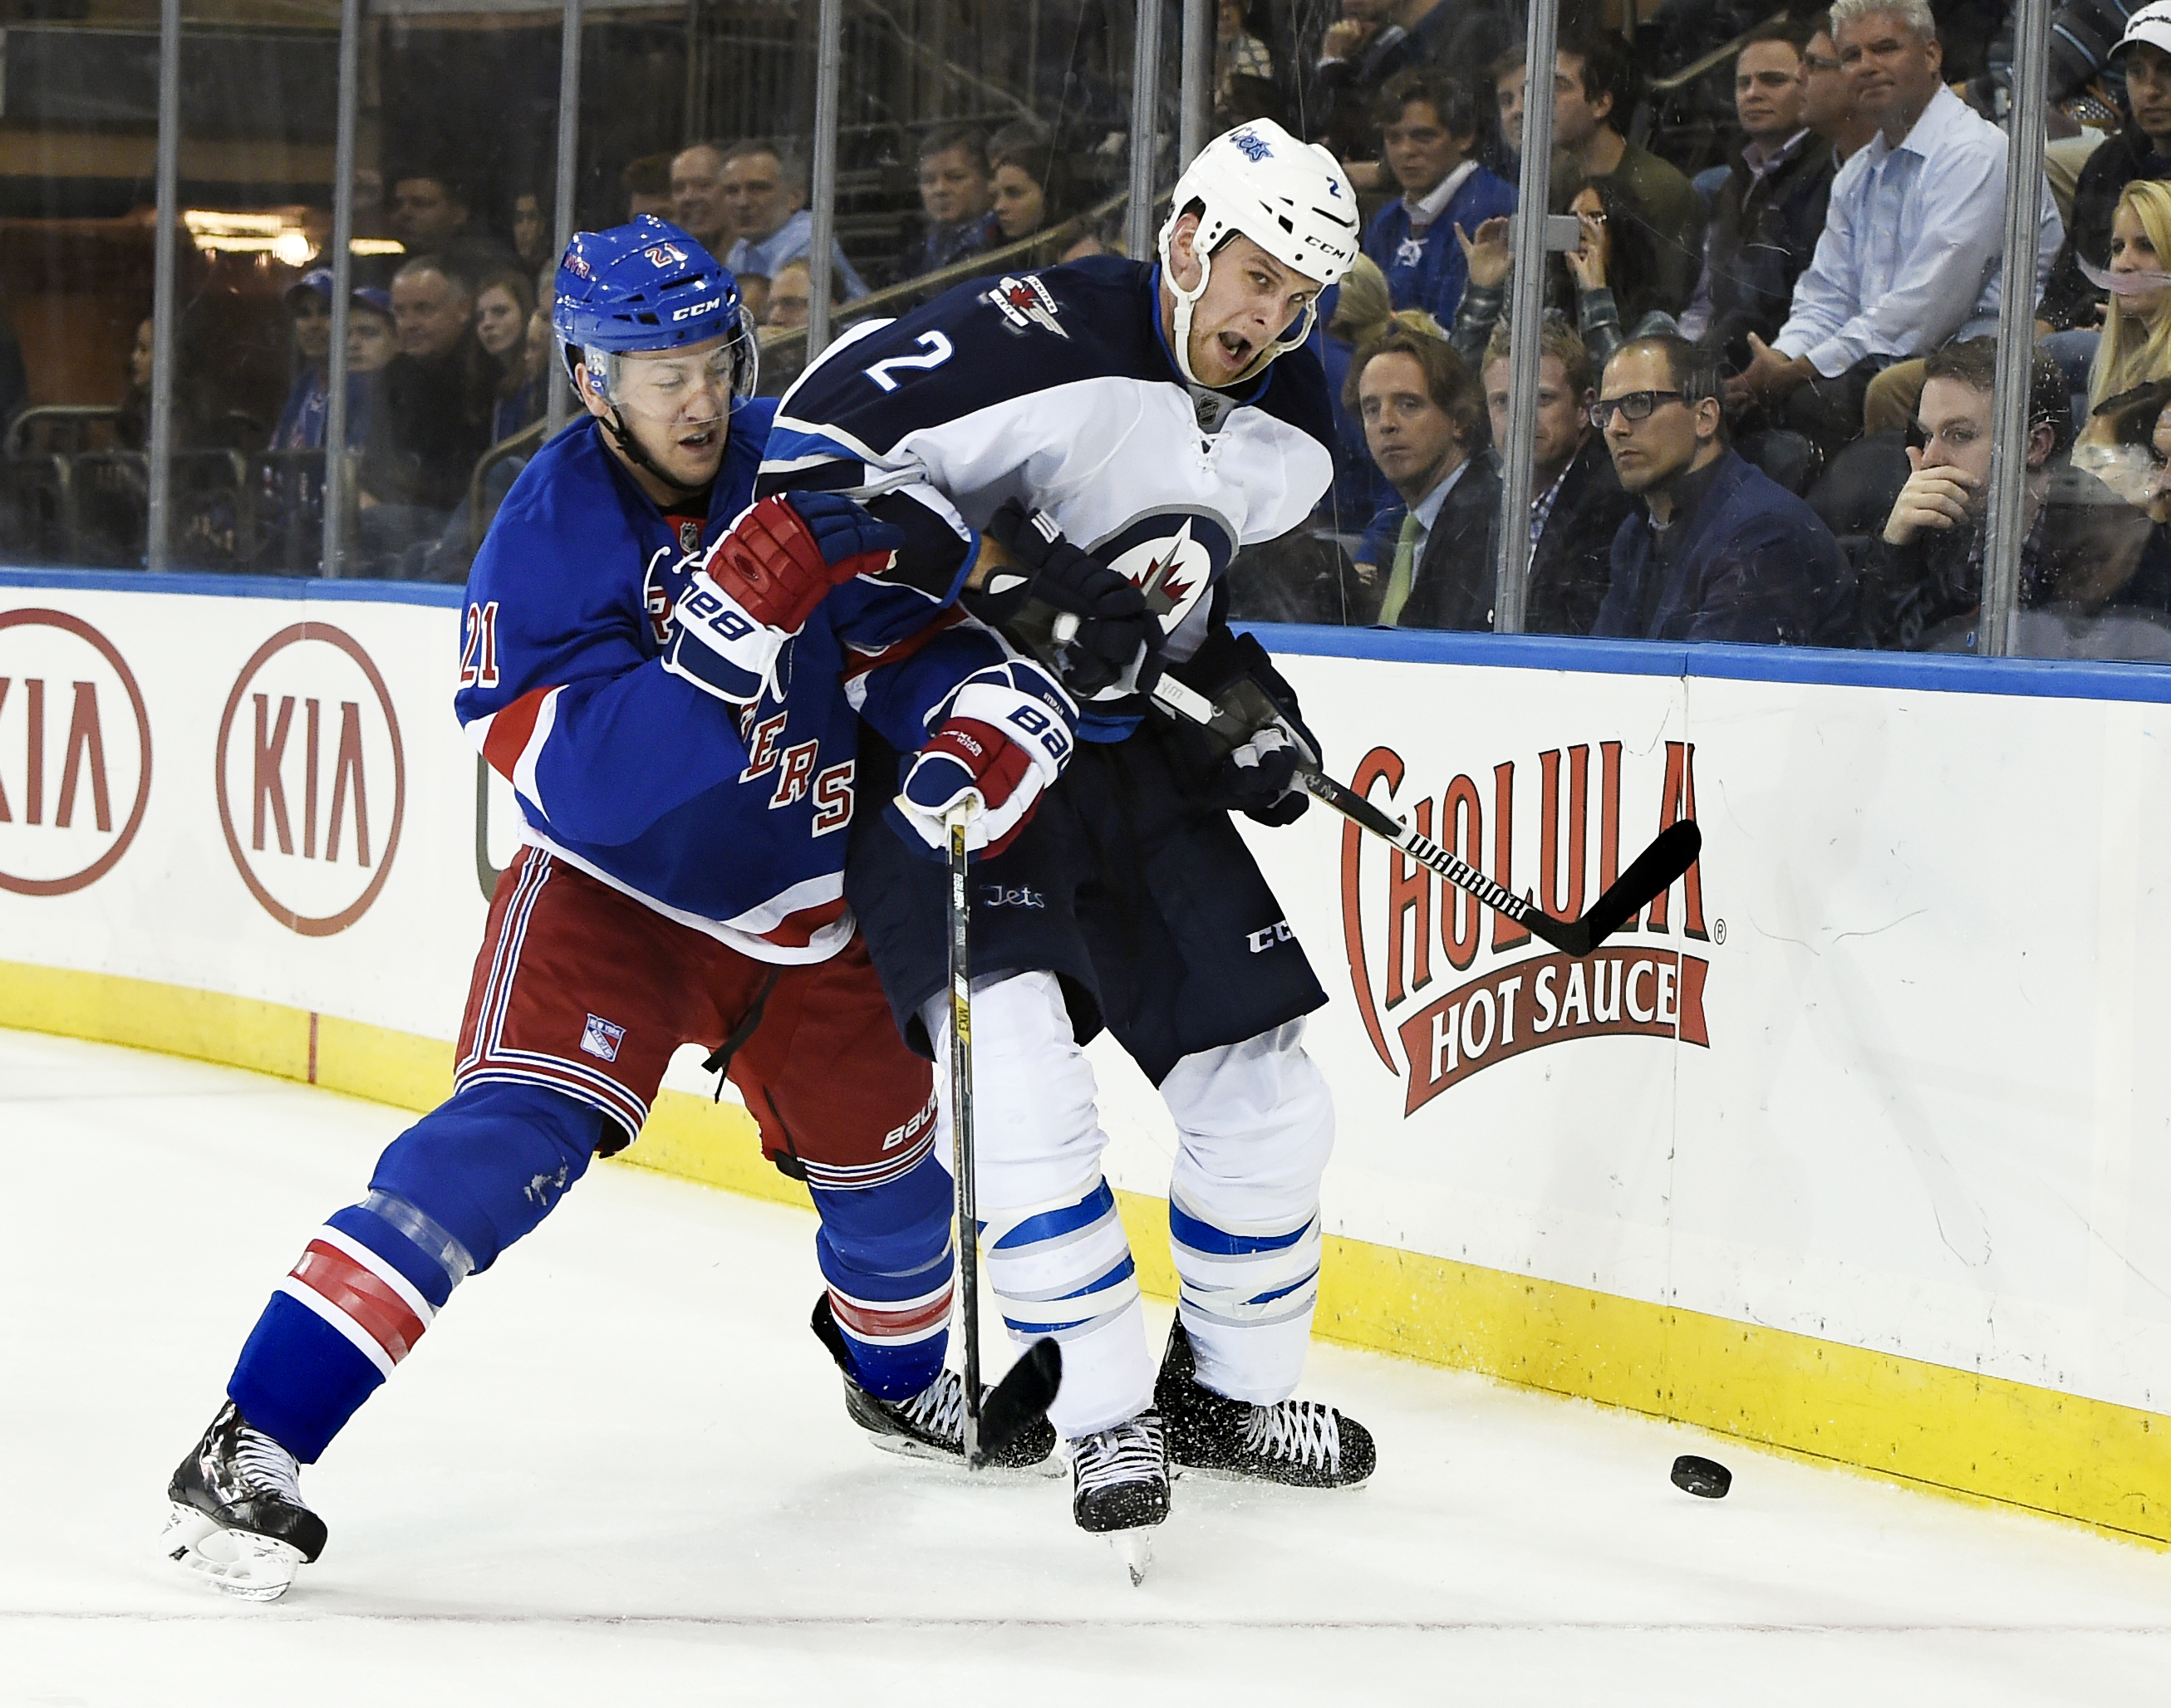 New York Rangers center Derek Stepan (21) shoves Winnipeg Jets defenseman Adam Pardy (2) against the boards during the second period of an NHL hockey game on Tuesday, Oct. 13, 2015, in New York. (AP Photo/Kathy Kmonicek)